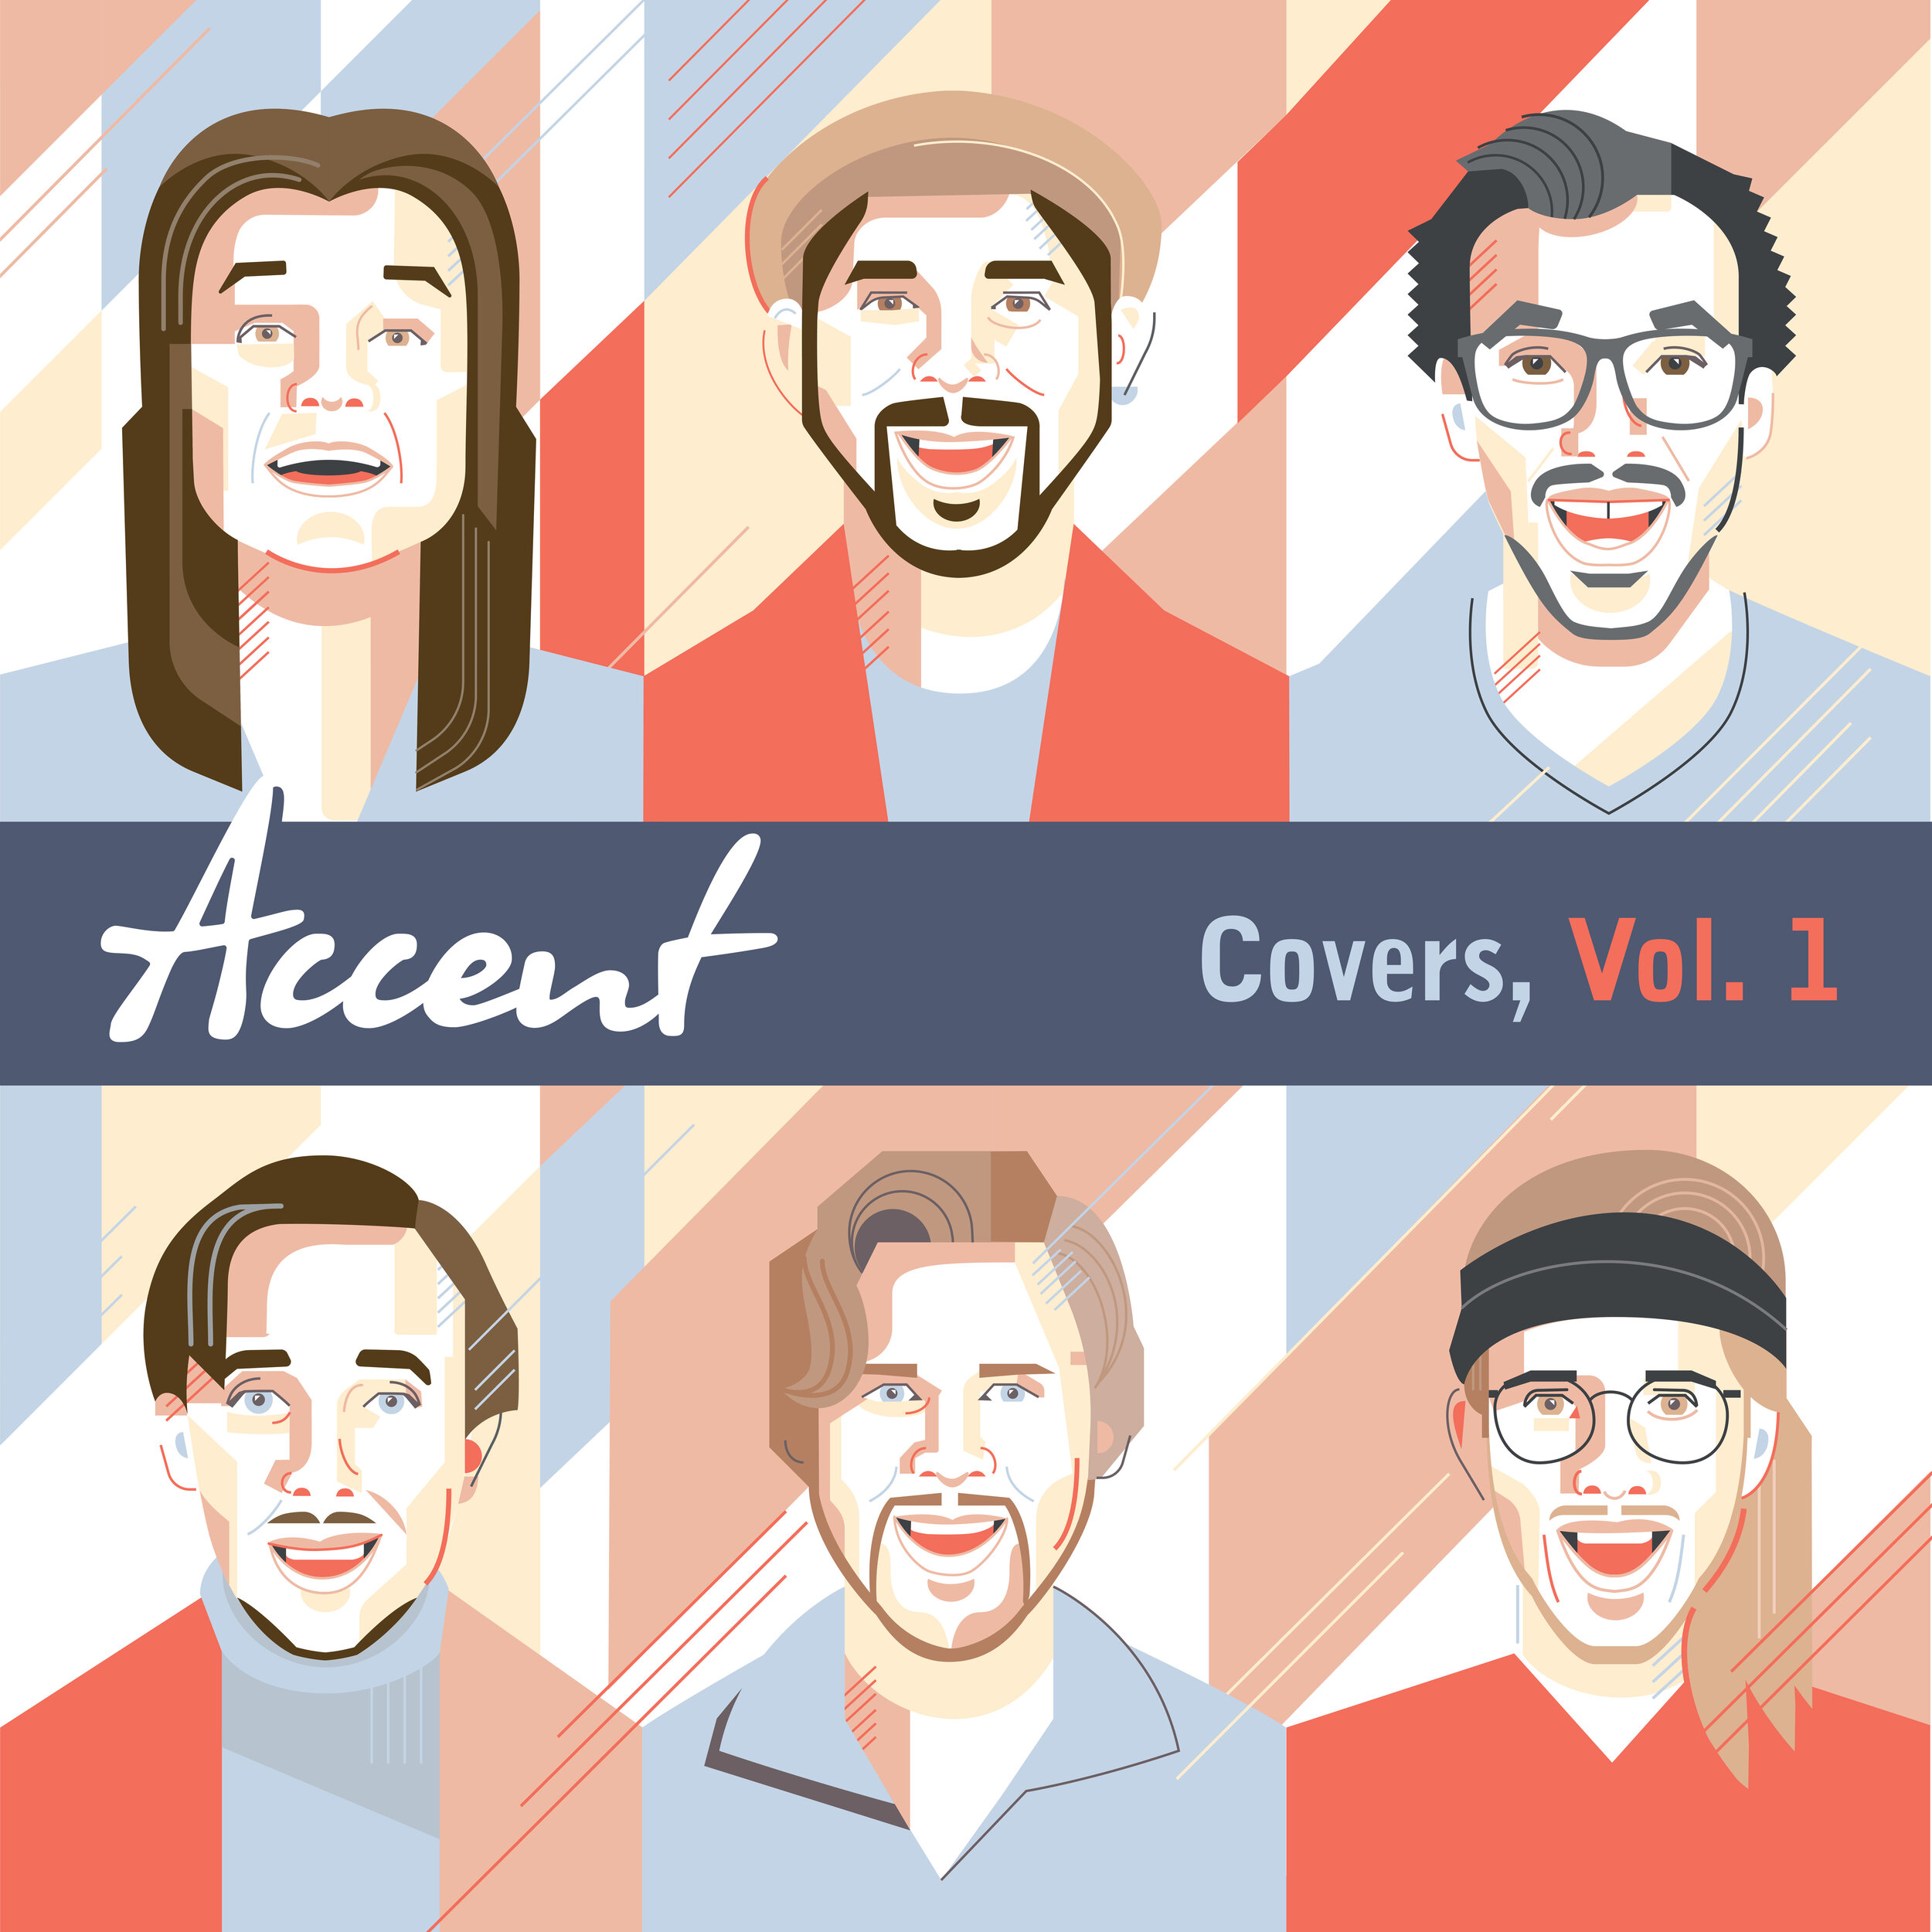 Covers, Vol. 1(2018) -